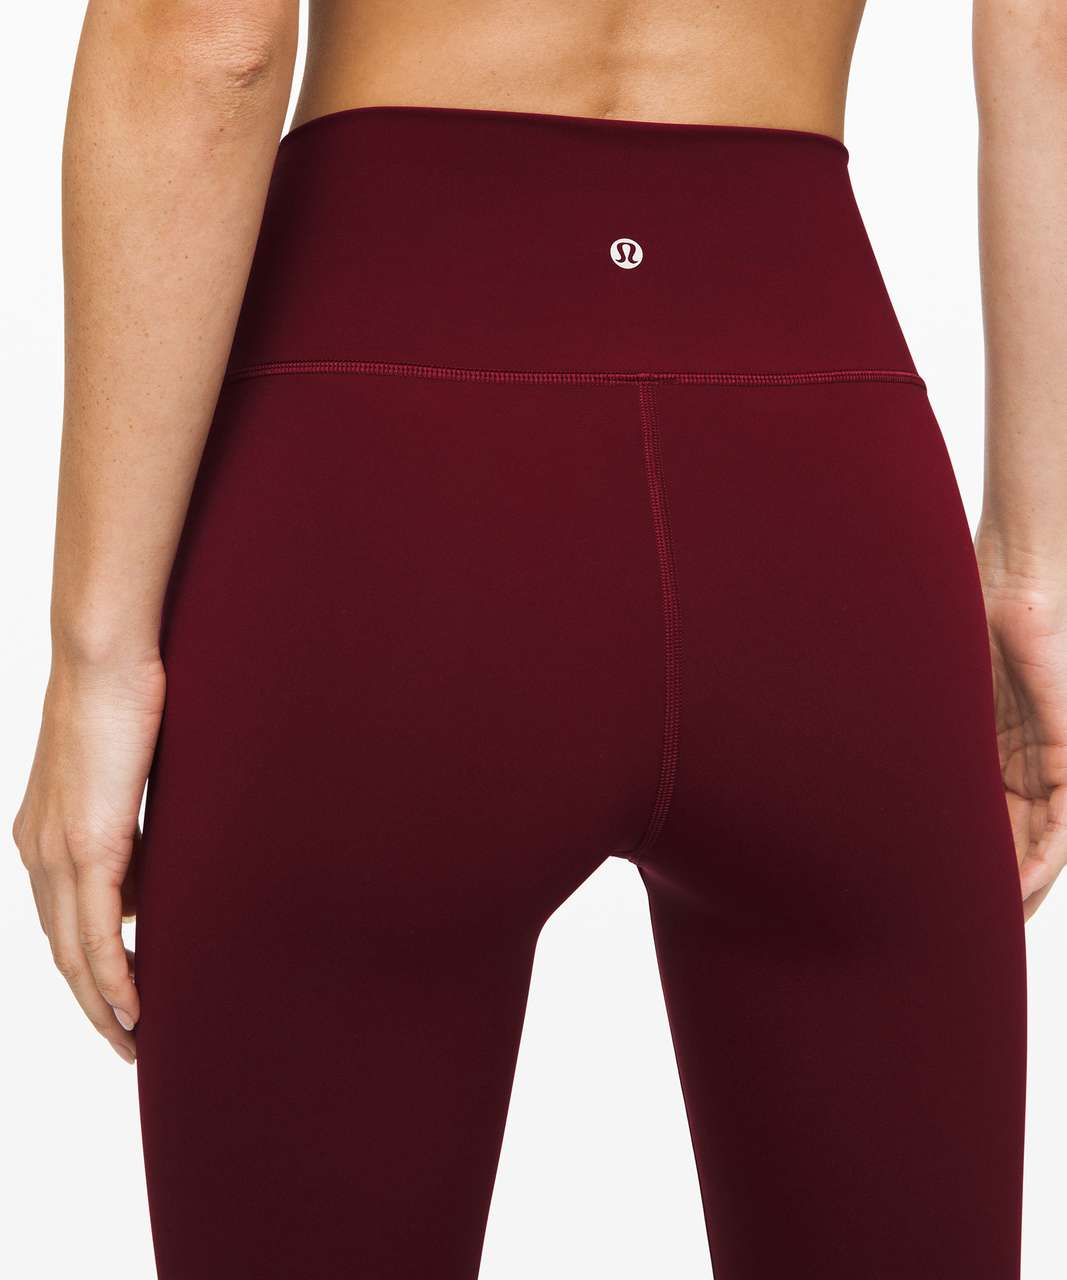 "Lululemon Wunder Under High-Rise Tight 28"" *Brushed Full-On Luxtreme - Deep Rouge"